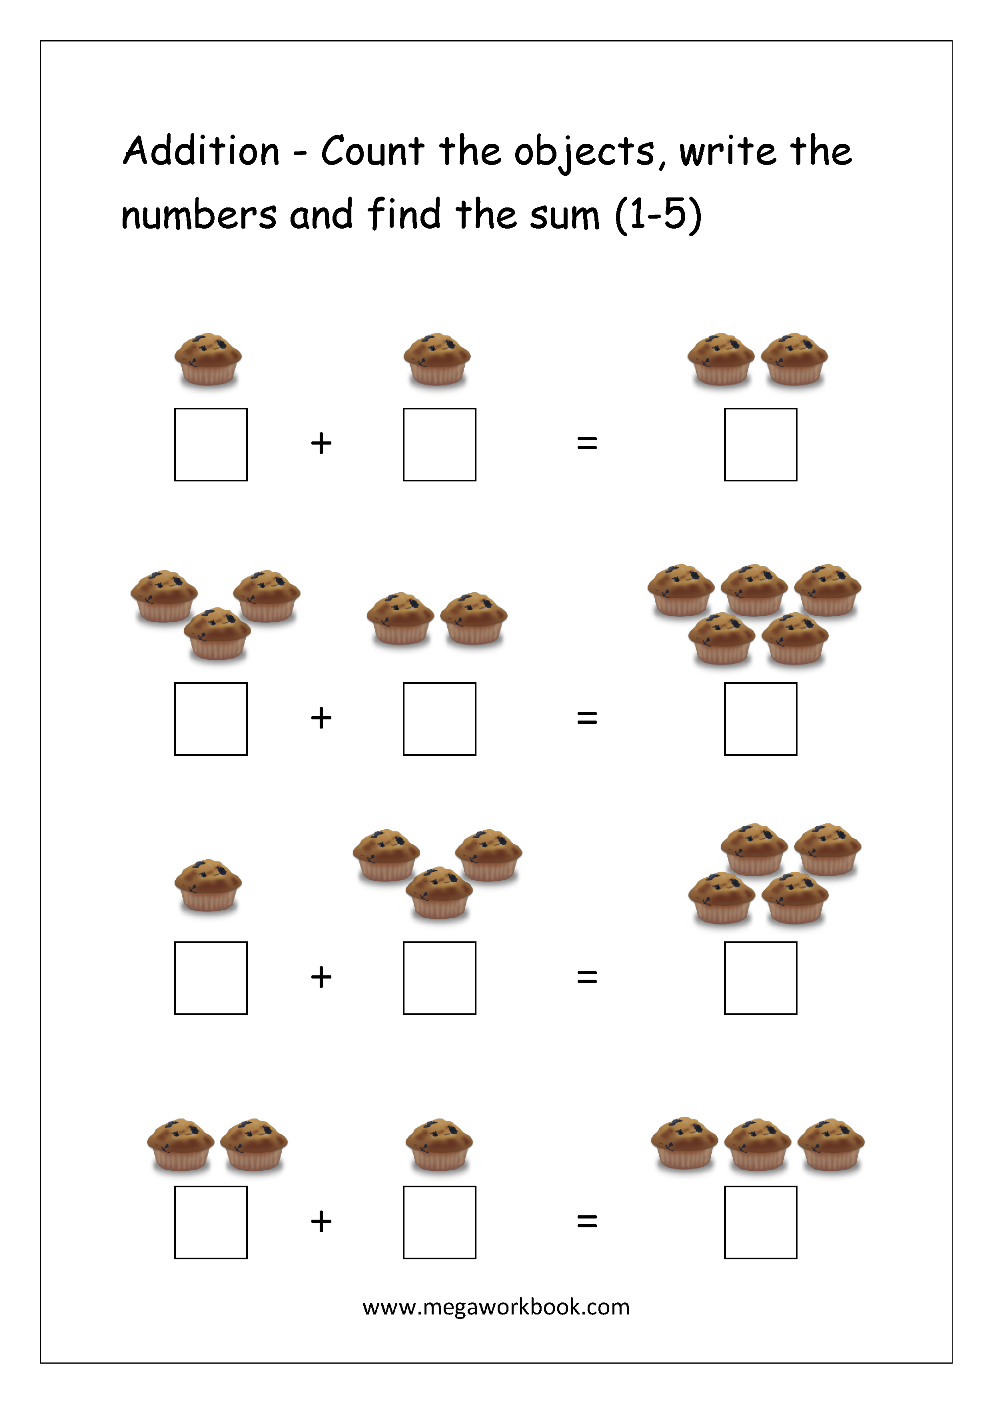 Addition Worksheets 1 5 - preschool missing number ...